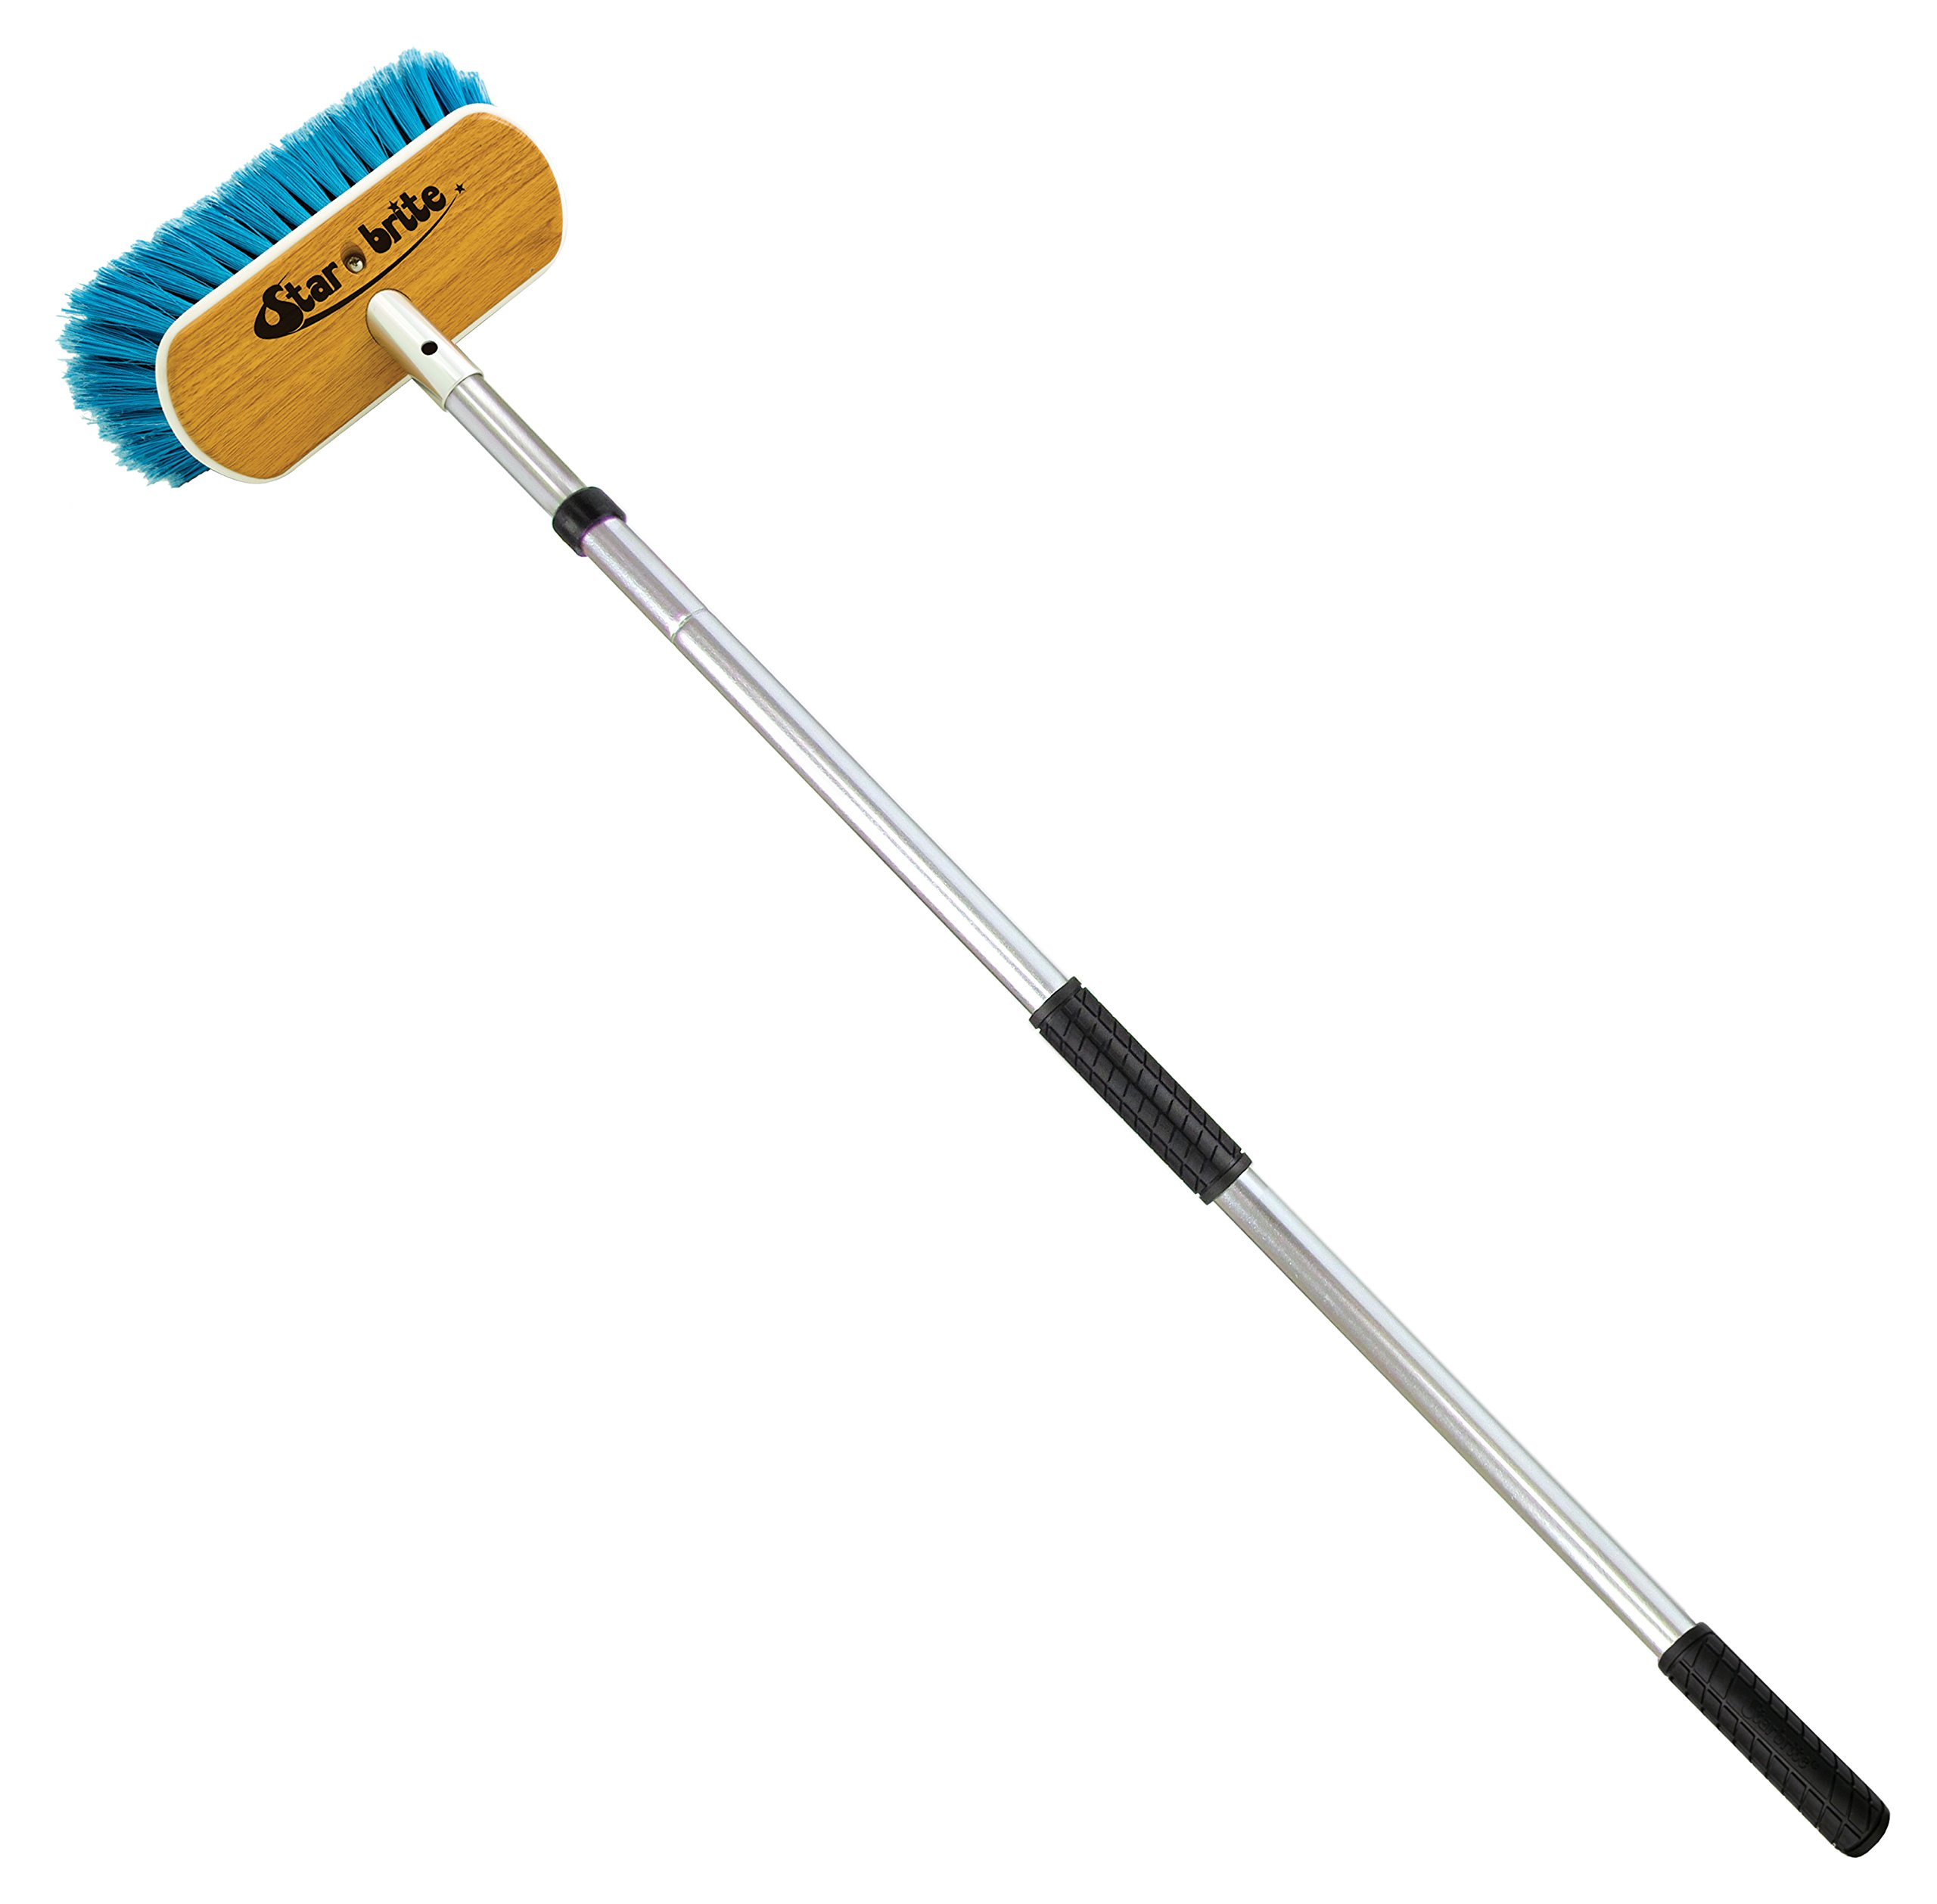 Star brite Premium Telescopic Floating Extend-A-Brush Quick-Connect Handle Combo, 3'-6'